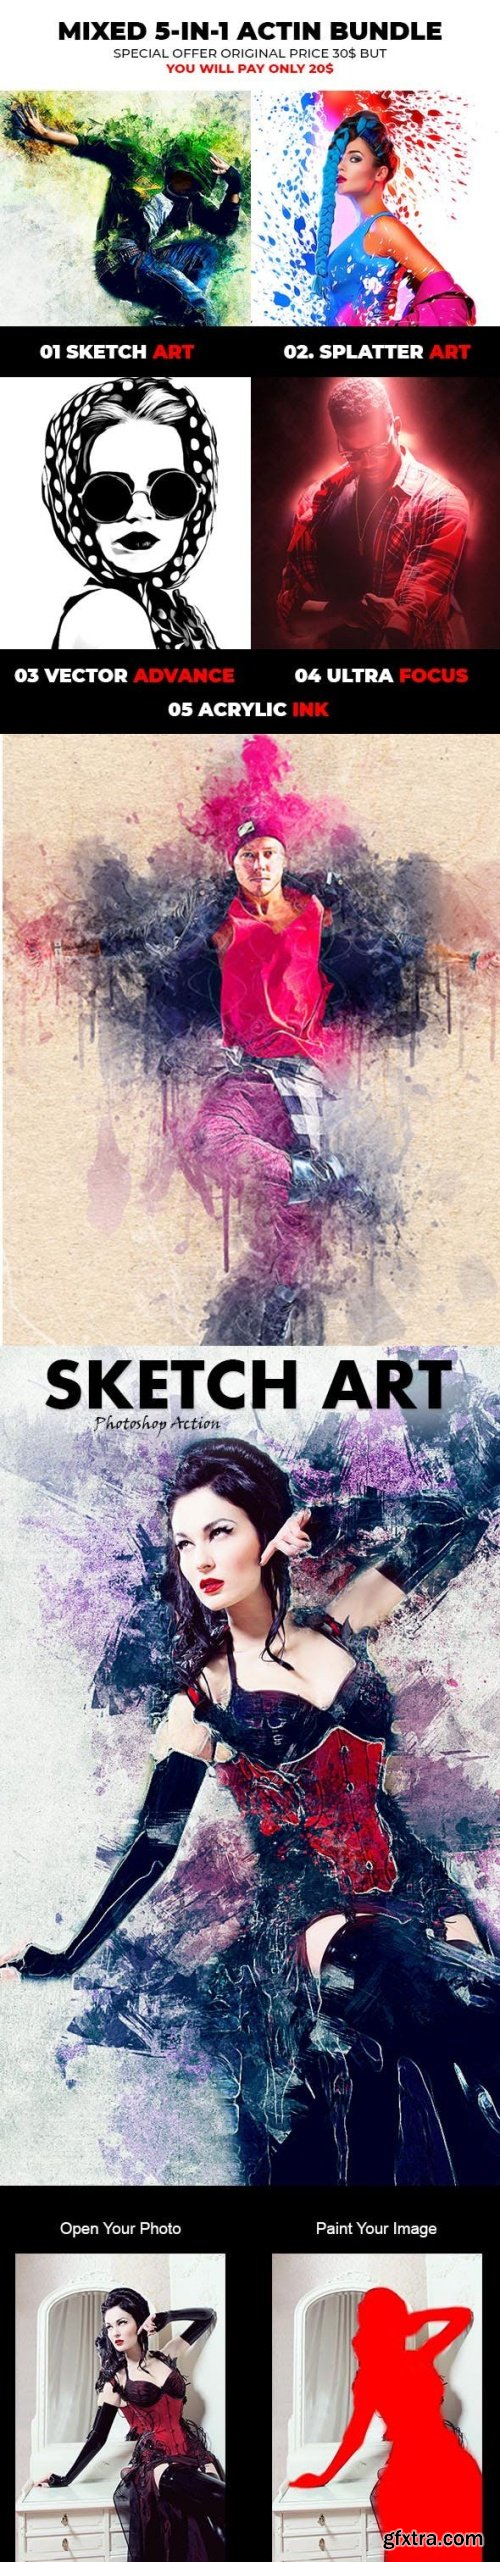 Graphicriver - Mixed Art 5 in 1 Photoshop Action Bundle 22667080